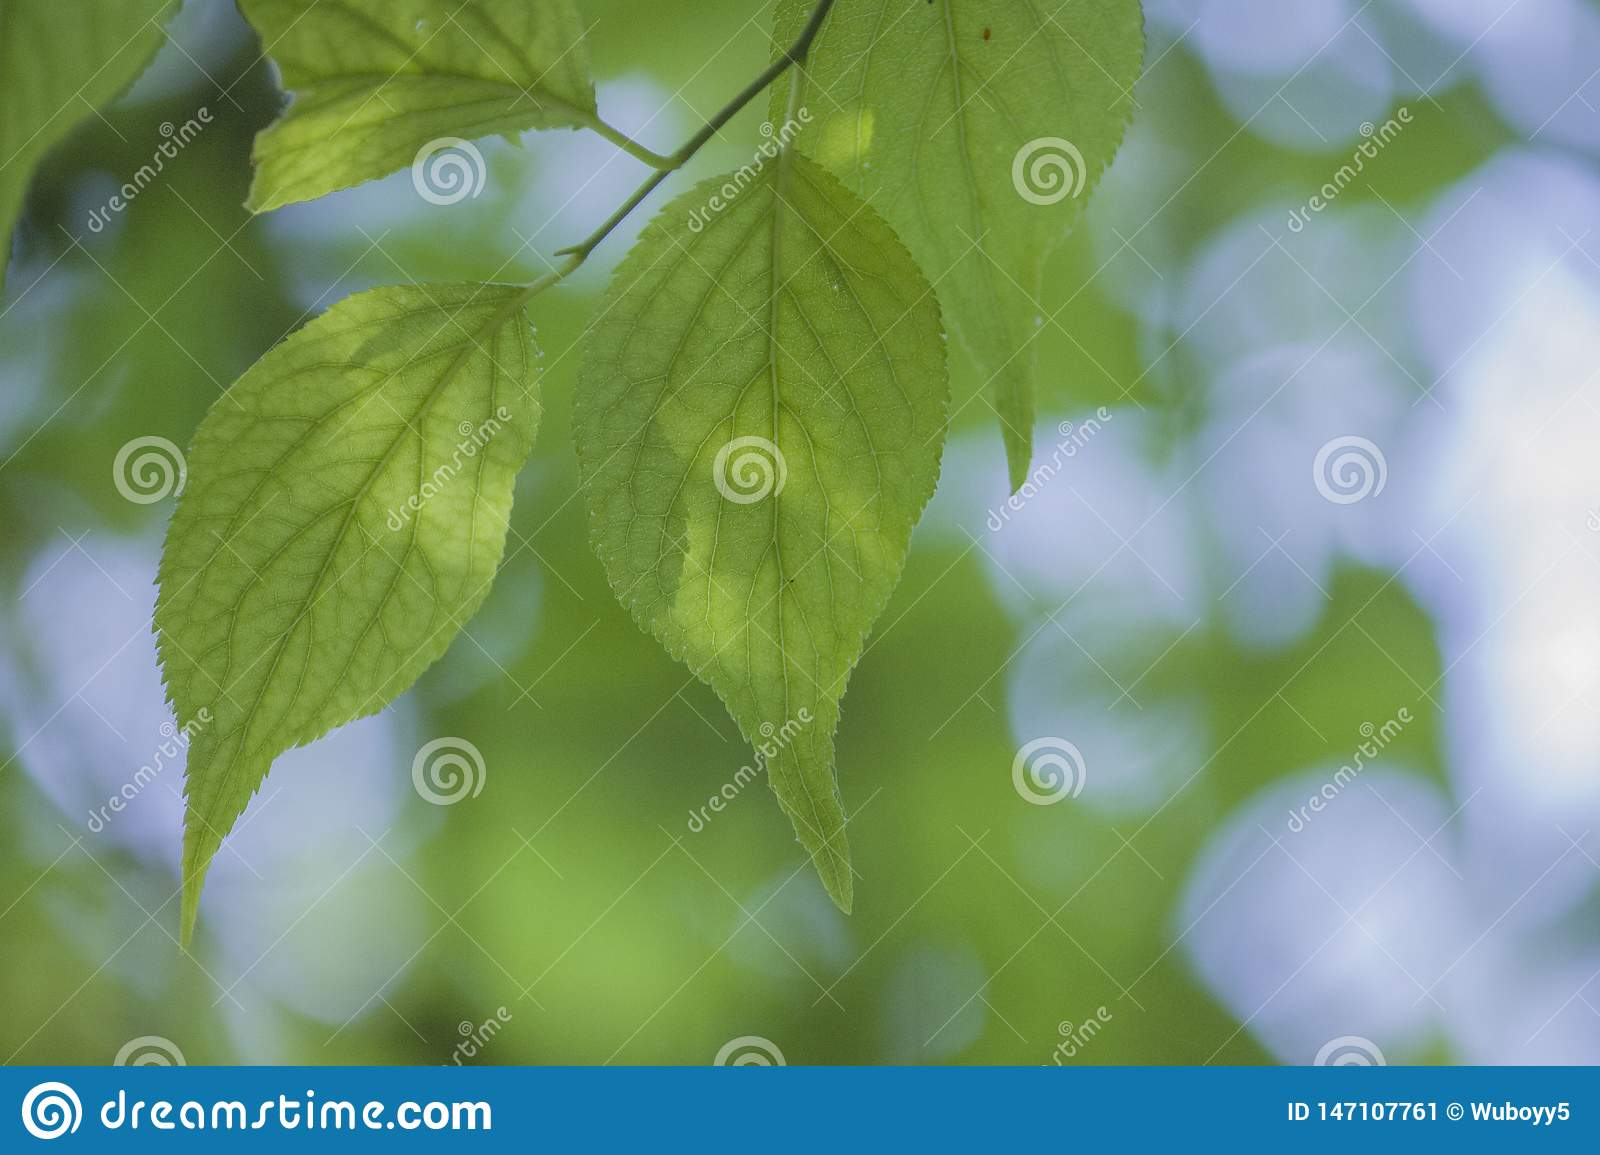 A plant with tender green leaves